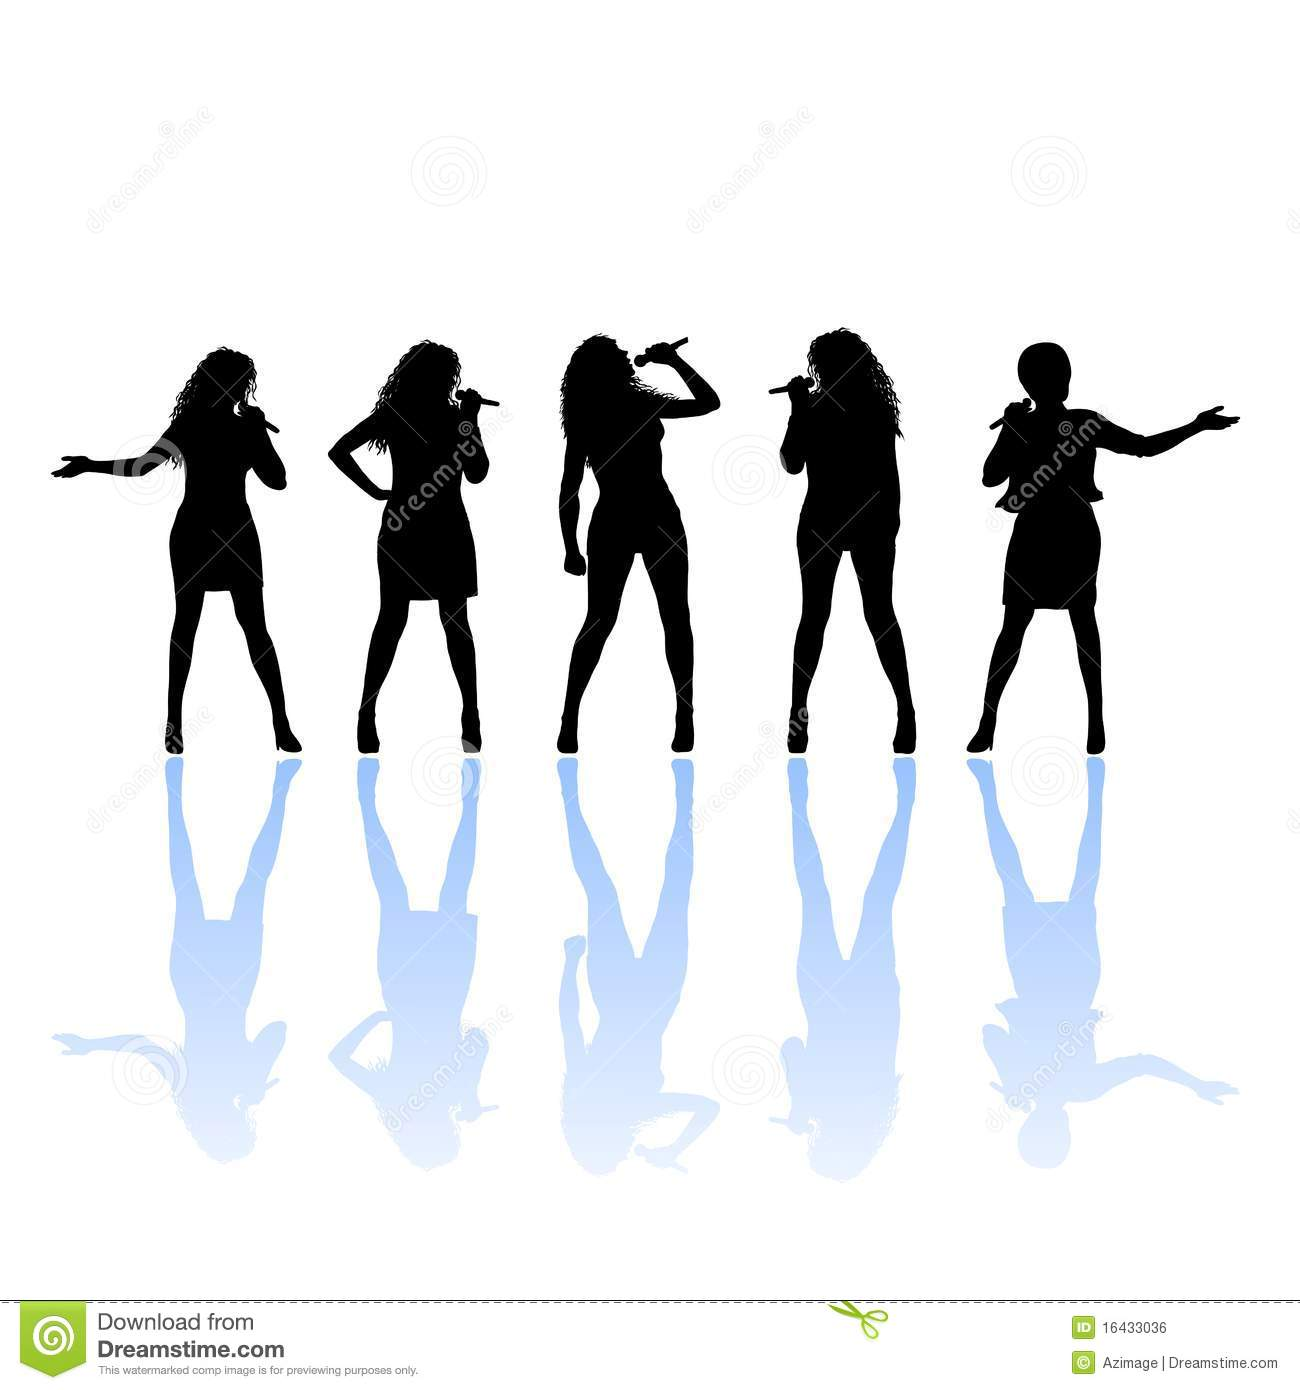 Silhouette Of Female Singer Royalty Free Stock Image   Image  16433036